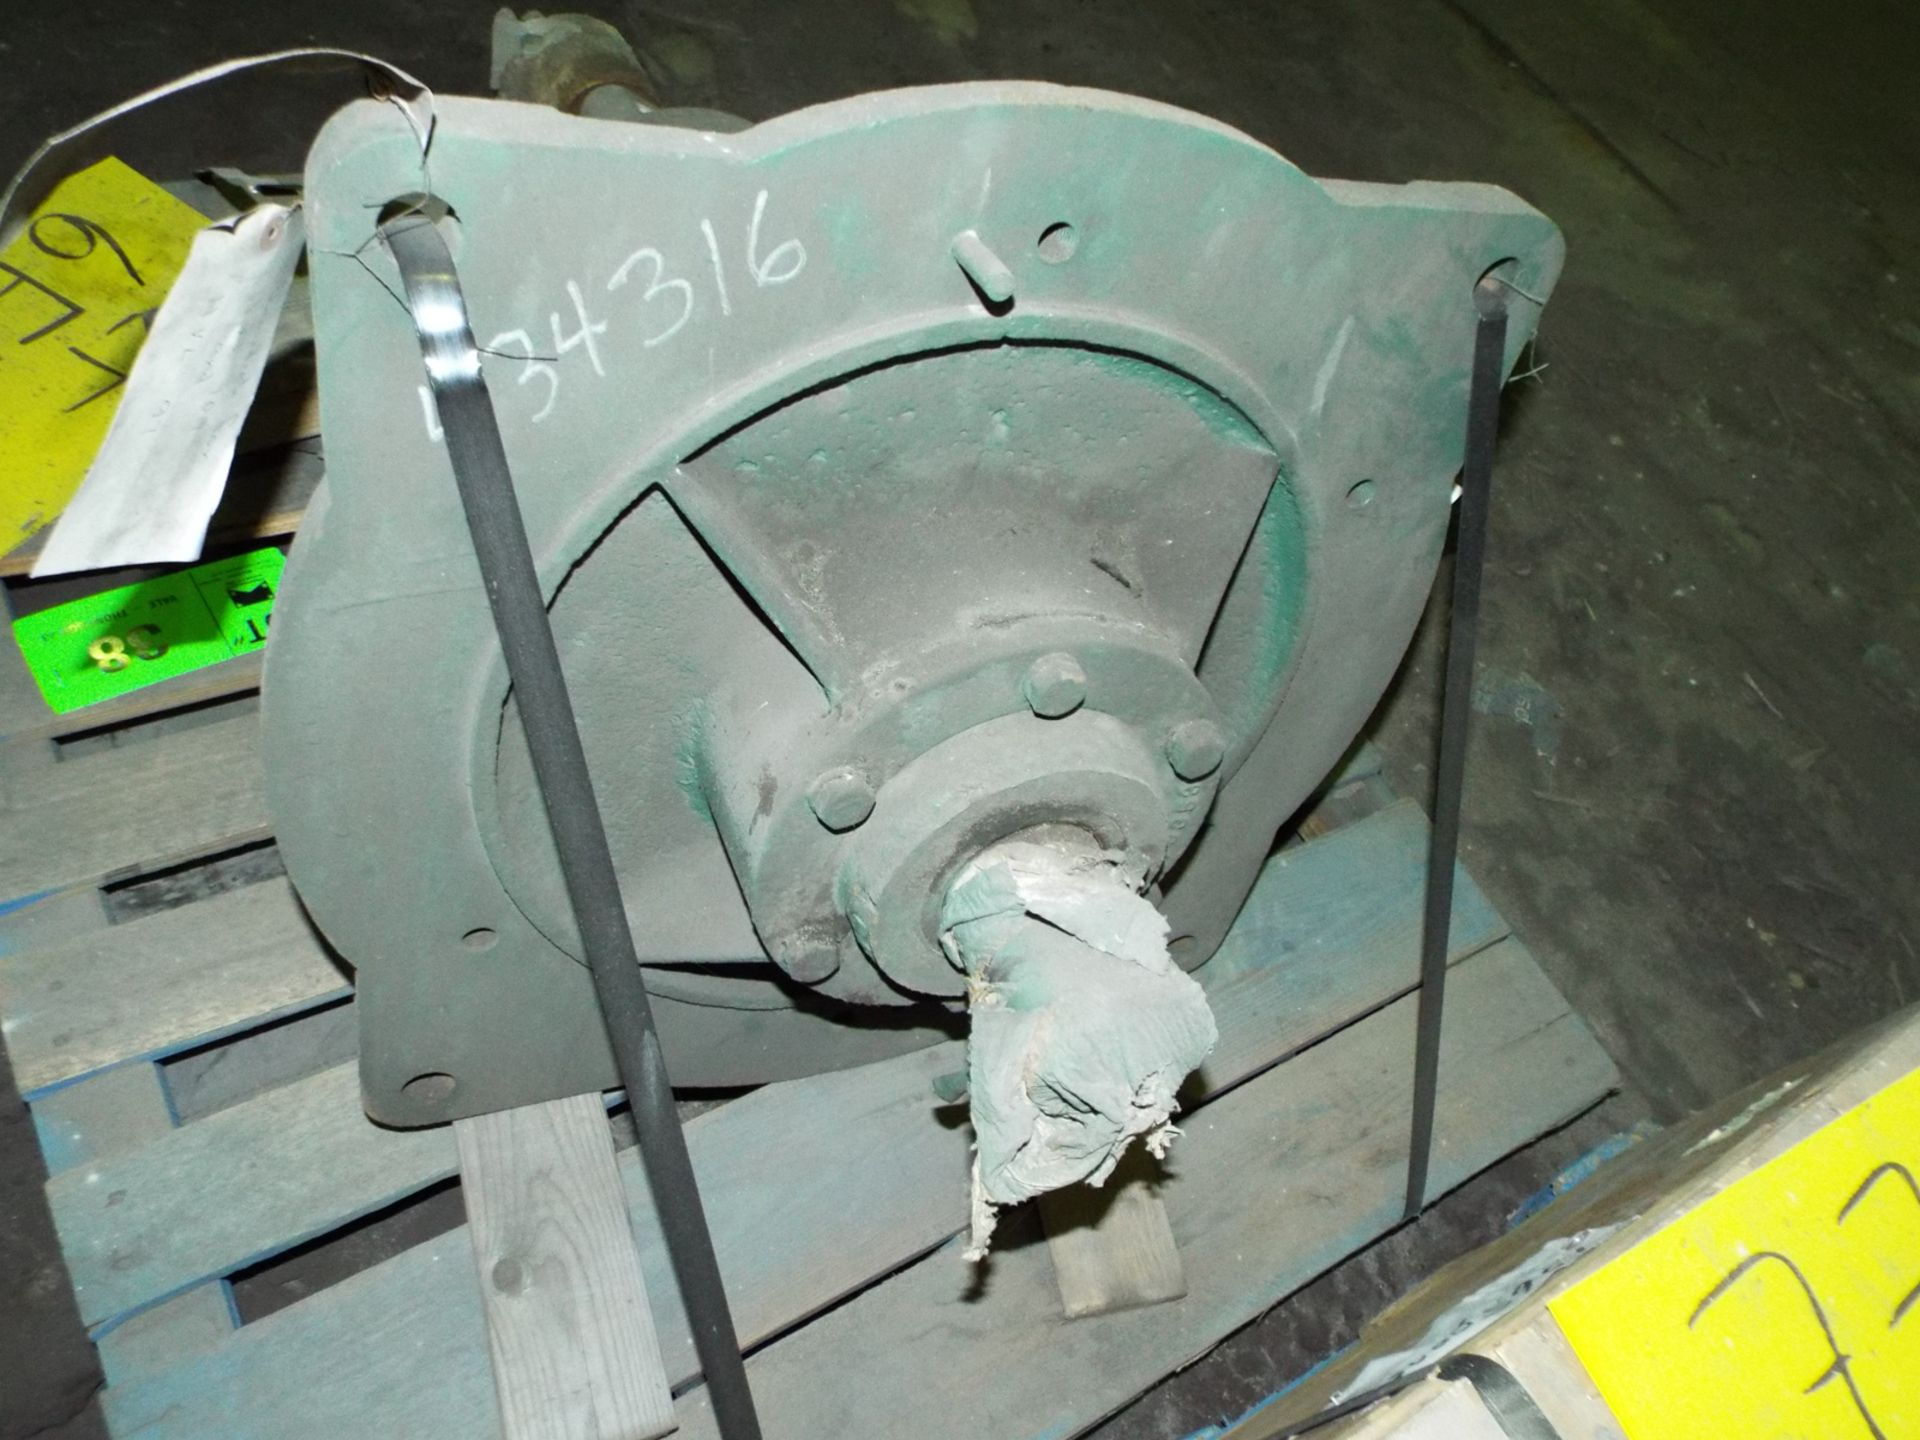 LOT/ CONTENTS OF SKID - HAMILTON GEAR WORM TYPE GEARBOX COMPONENT (PLT 6FF) - Image 2 of 2